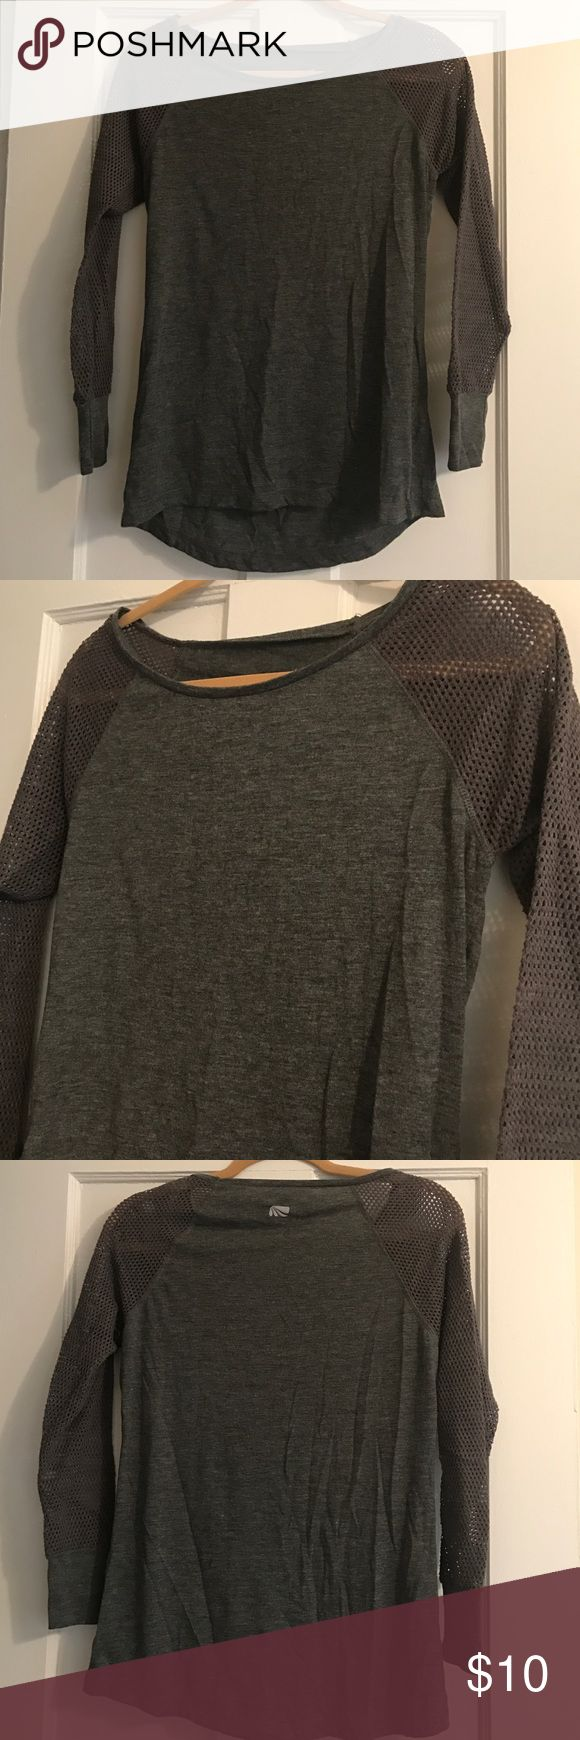 Adorable gray athletic top with mesh sleeves In new condition. Supppper soft. Really cute mesh sleeves. Crew cut neck. No flaws. Size small but could also fit medium. Poly and rayon. Marika Tops Tees - Long Sleeve